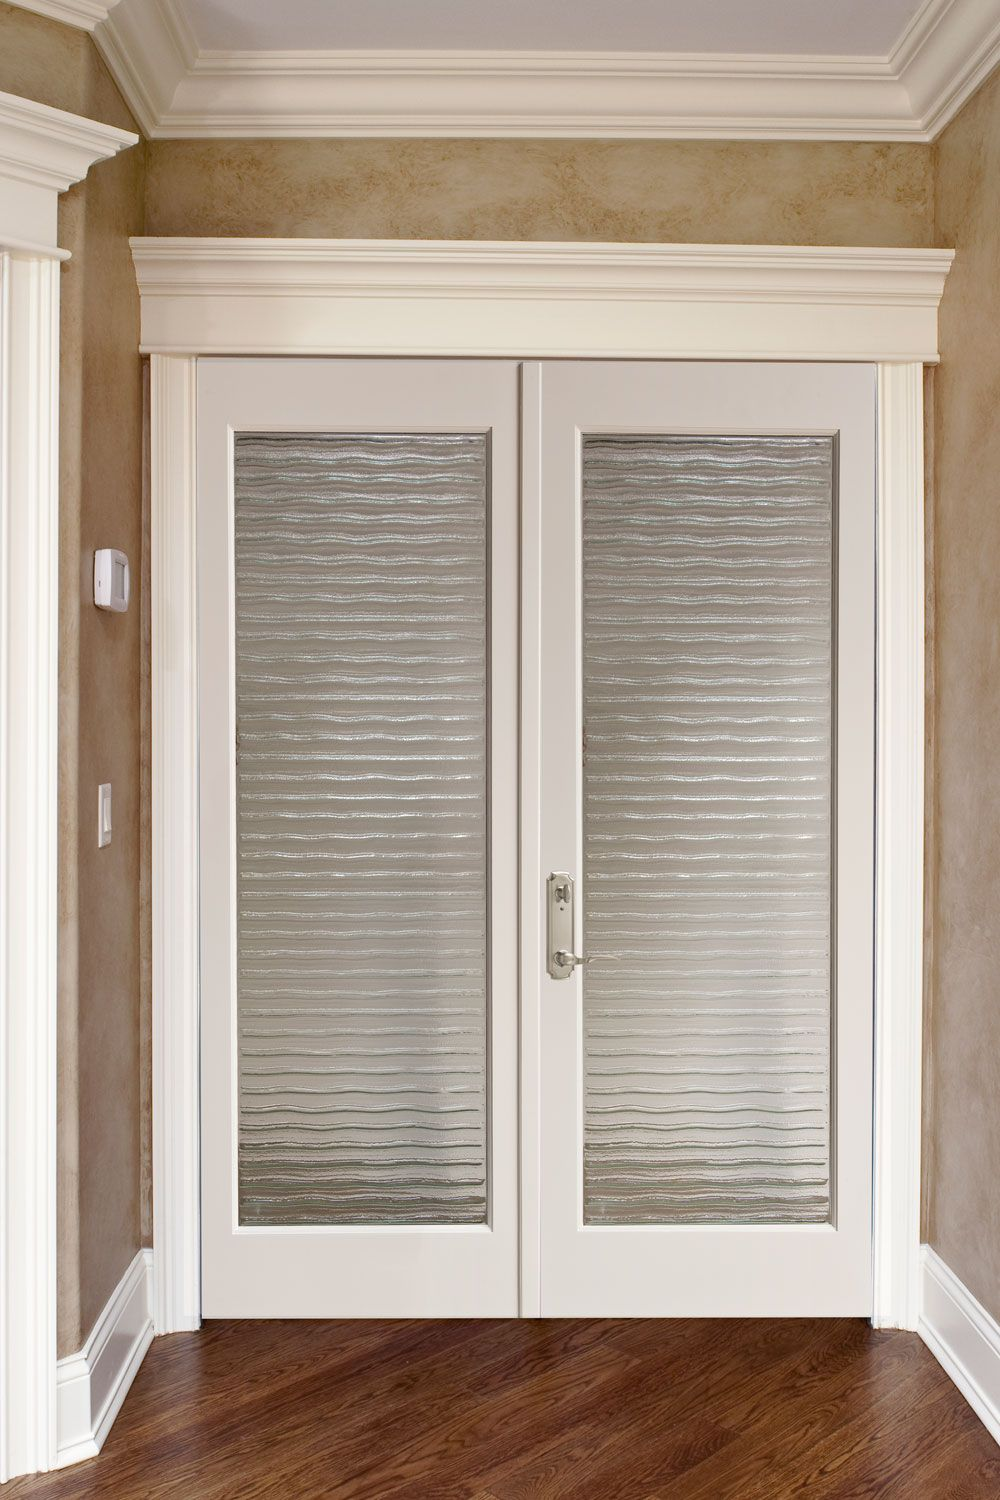 Wooden Internal Doors With: Solid Wood With White